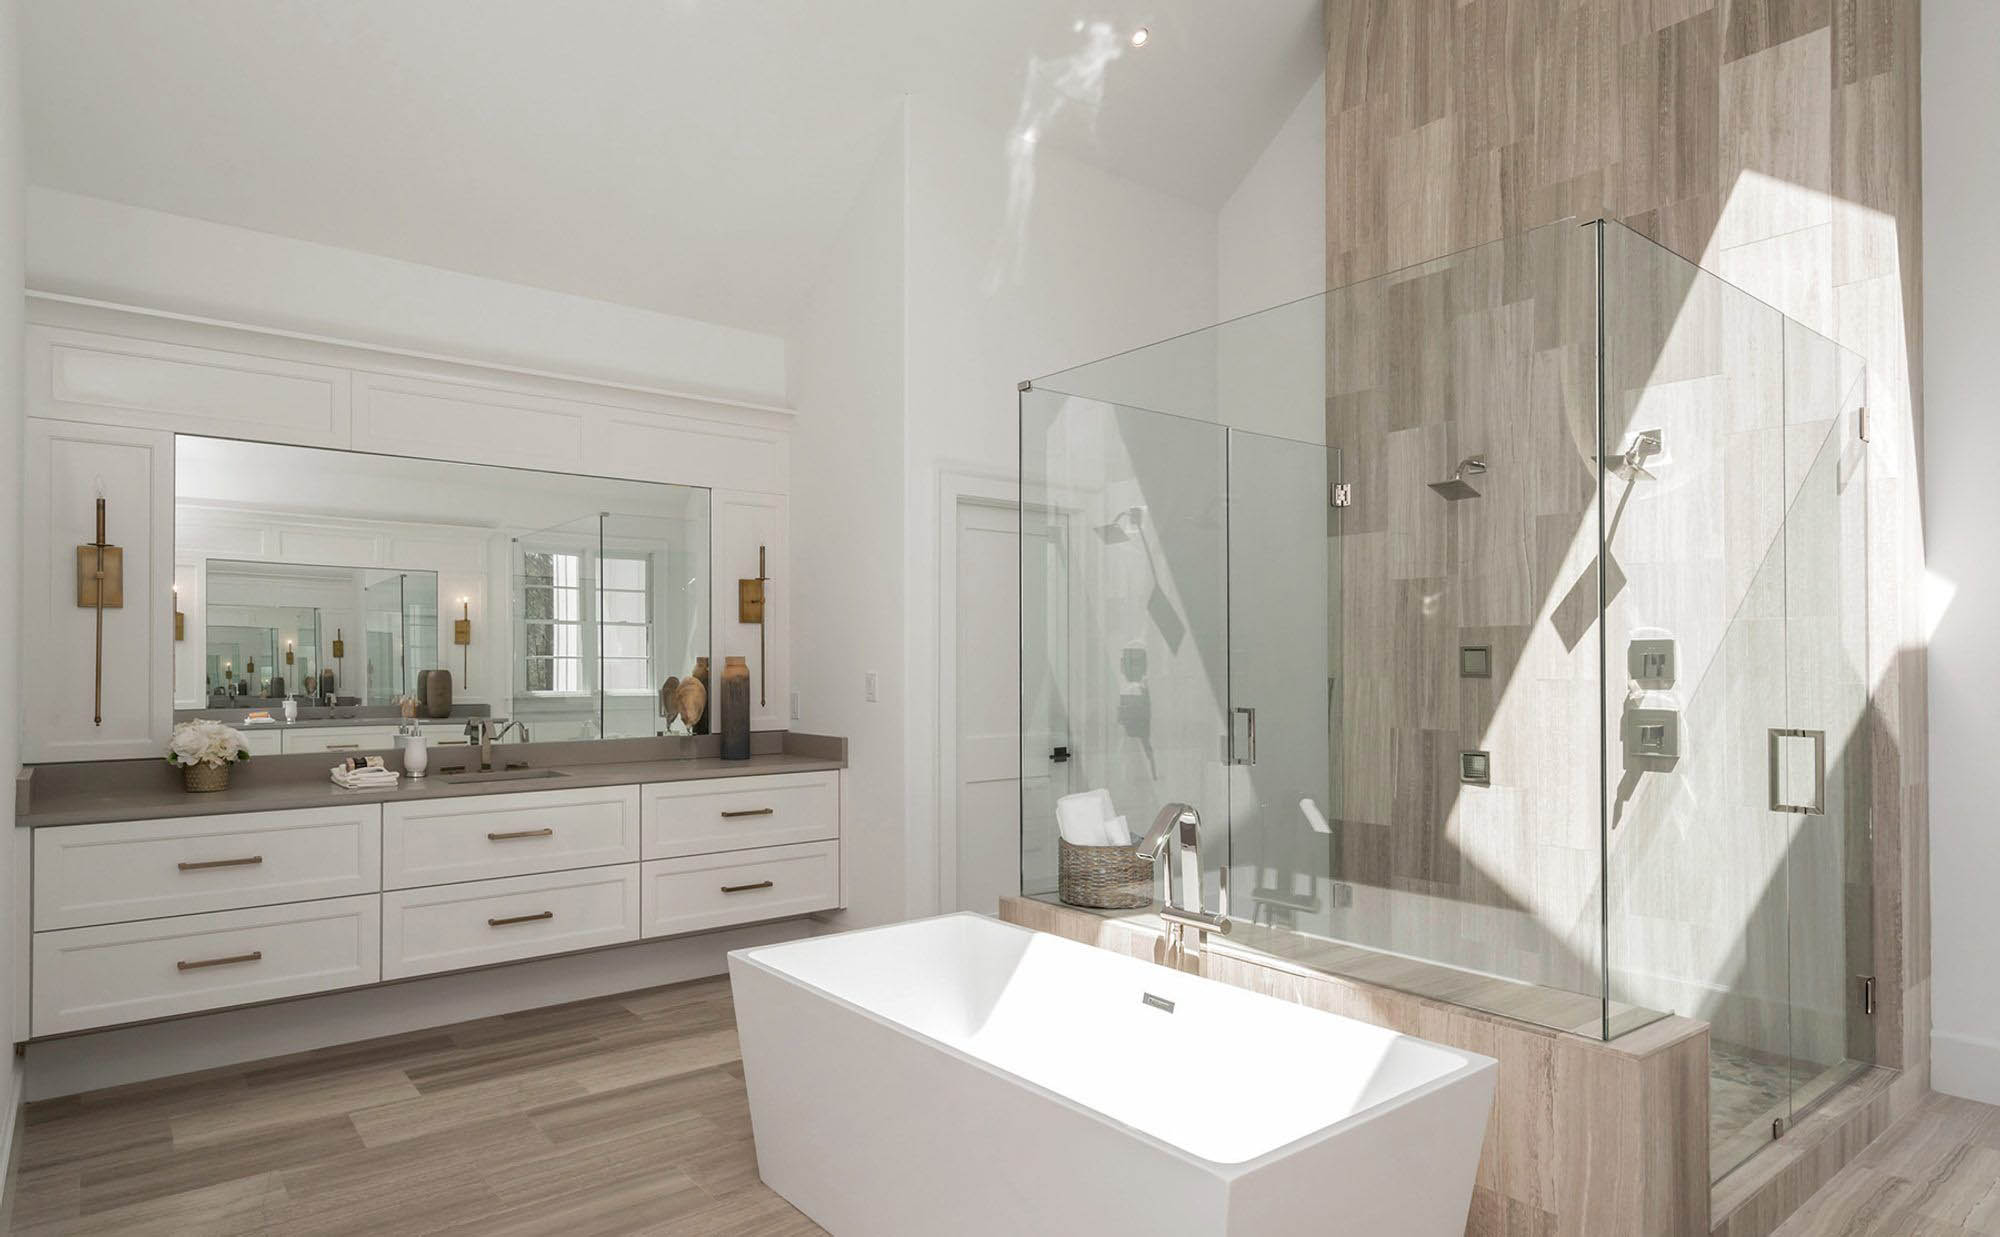 modern bathroom design. gray and white design. shaker style cabinets. tile walls. glass shower. soaking tub.